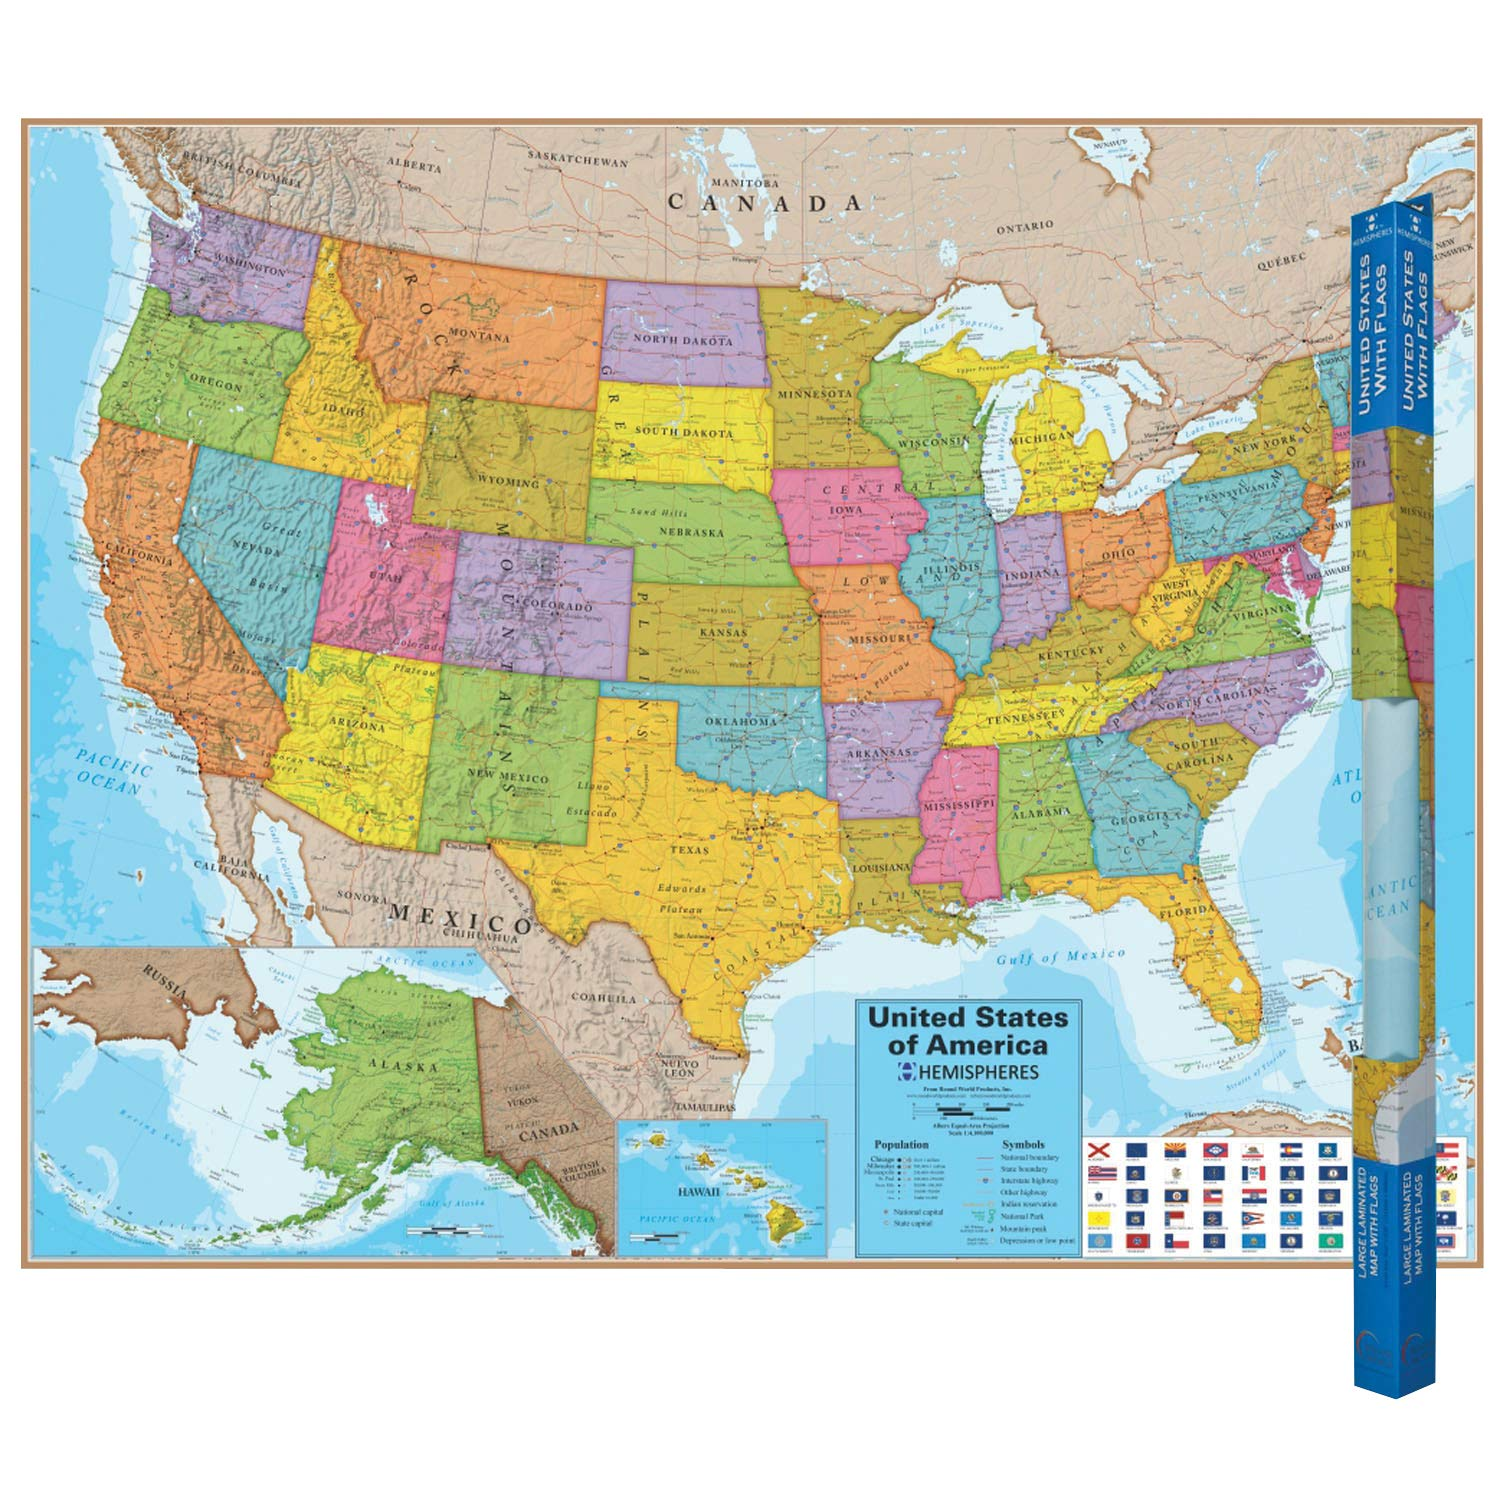 "Waypoint Geographic Hemispheres Wall Map of The USA with Blue Ocean - Poster Size Wall Art (38"" x 48"") - Includes US Highways and State Flags, Ships Rolled and Laminated"